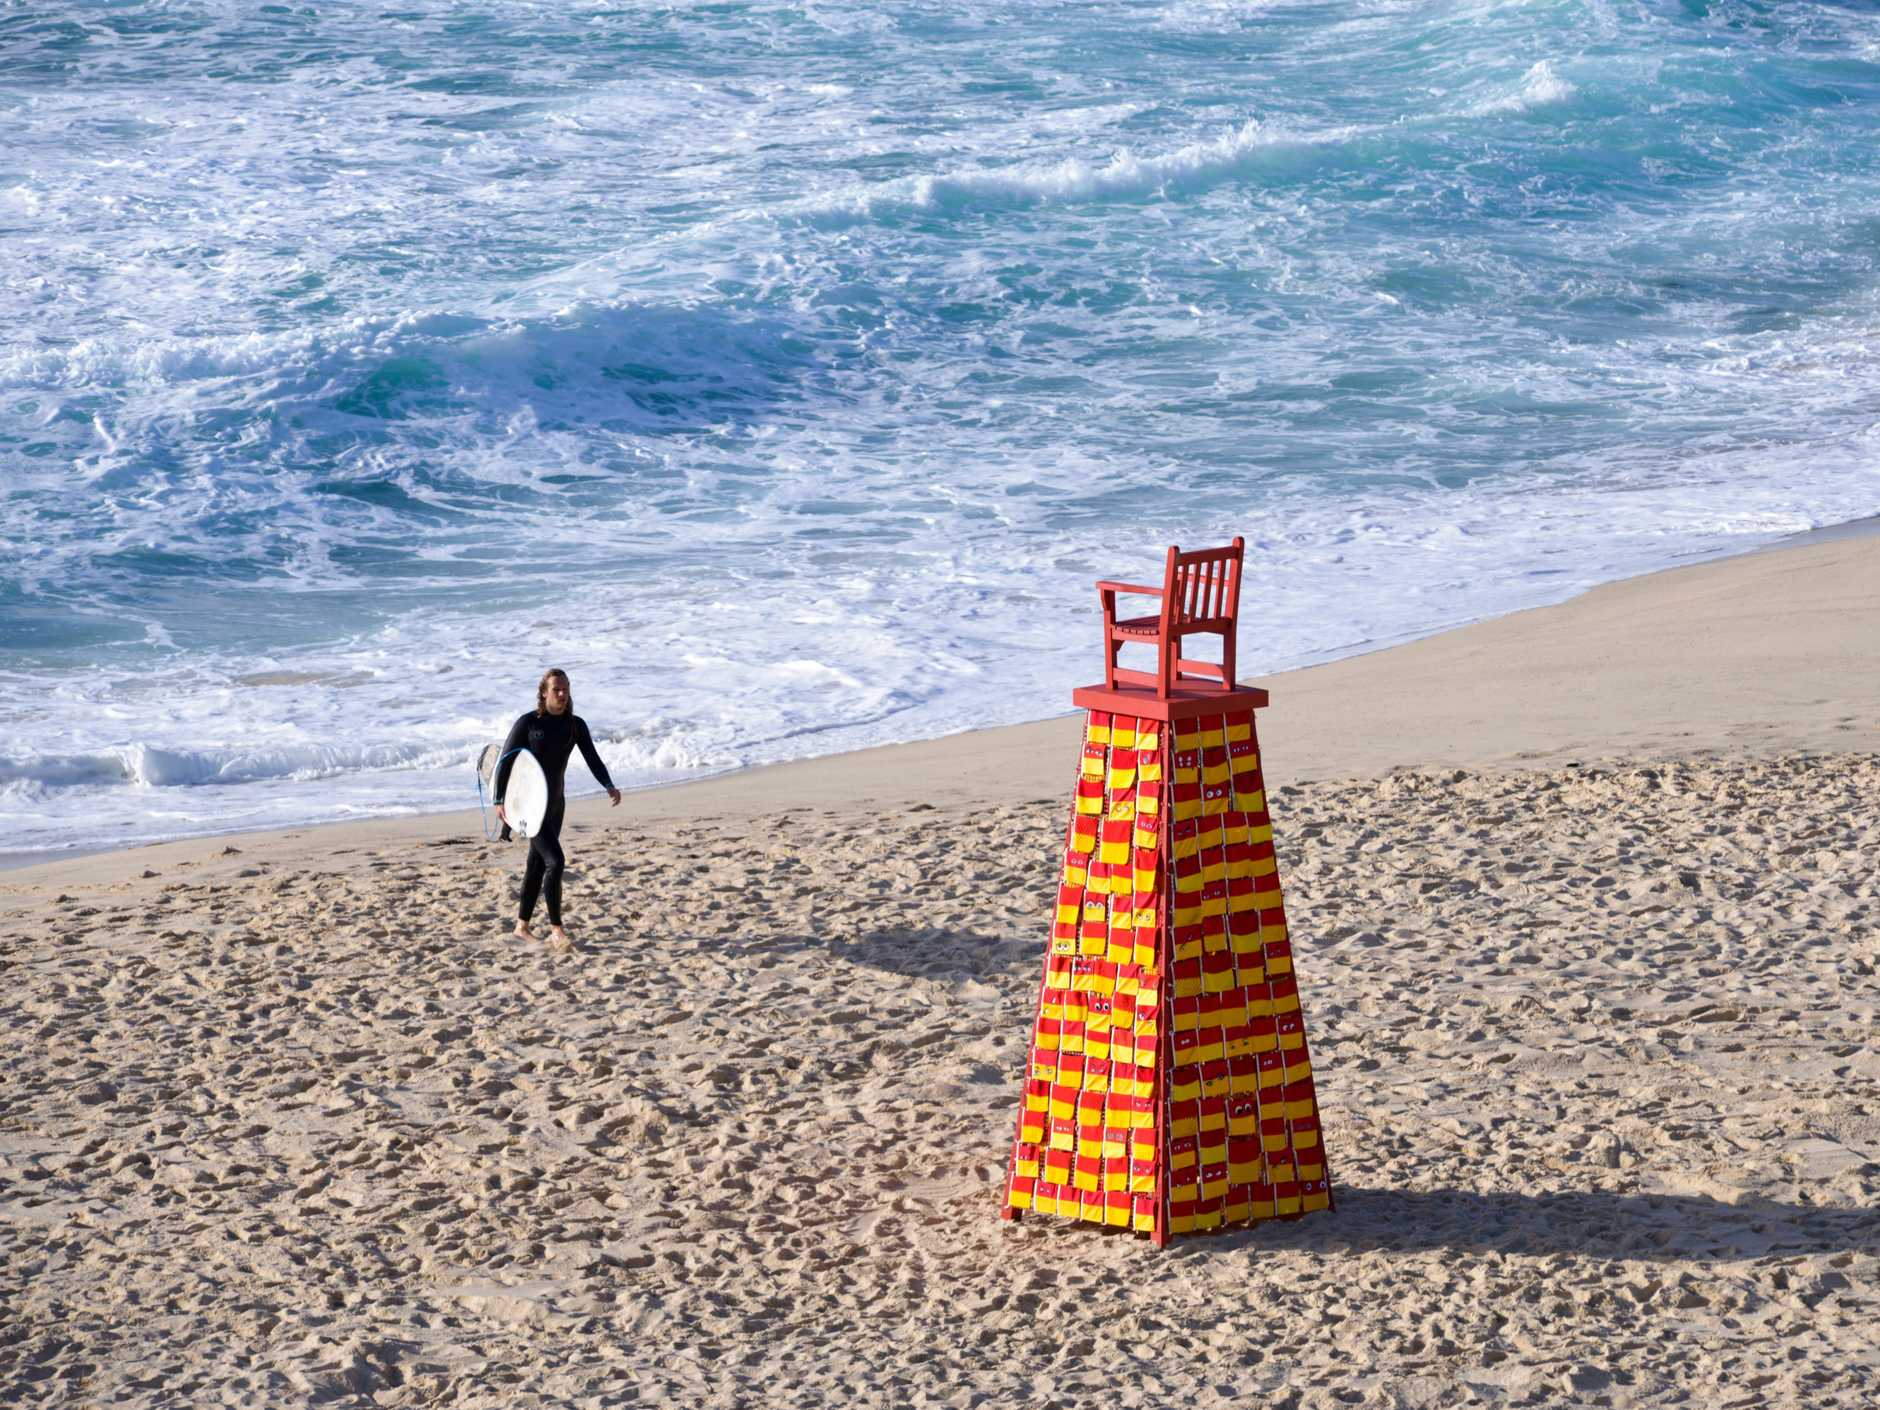 KNITTED ART: Linton Meagher's entry in this year's Sculpture by the Sea, Lookout For Me, is on the sand at Tamrama Beach. It's made of wood, marine grade stainless steel, aryclic wool, acrylic paint and cotton.